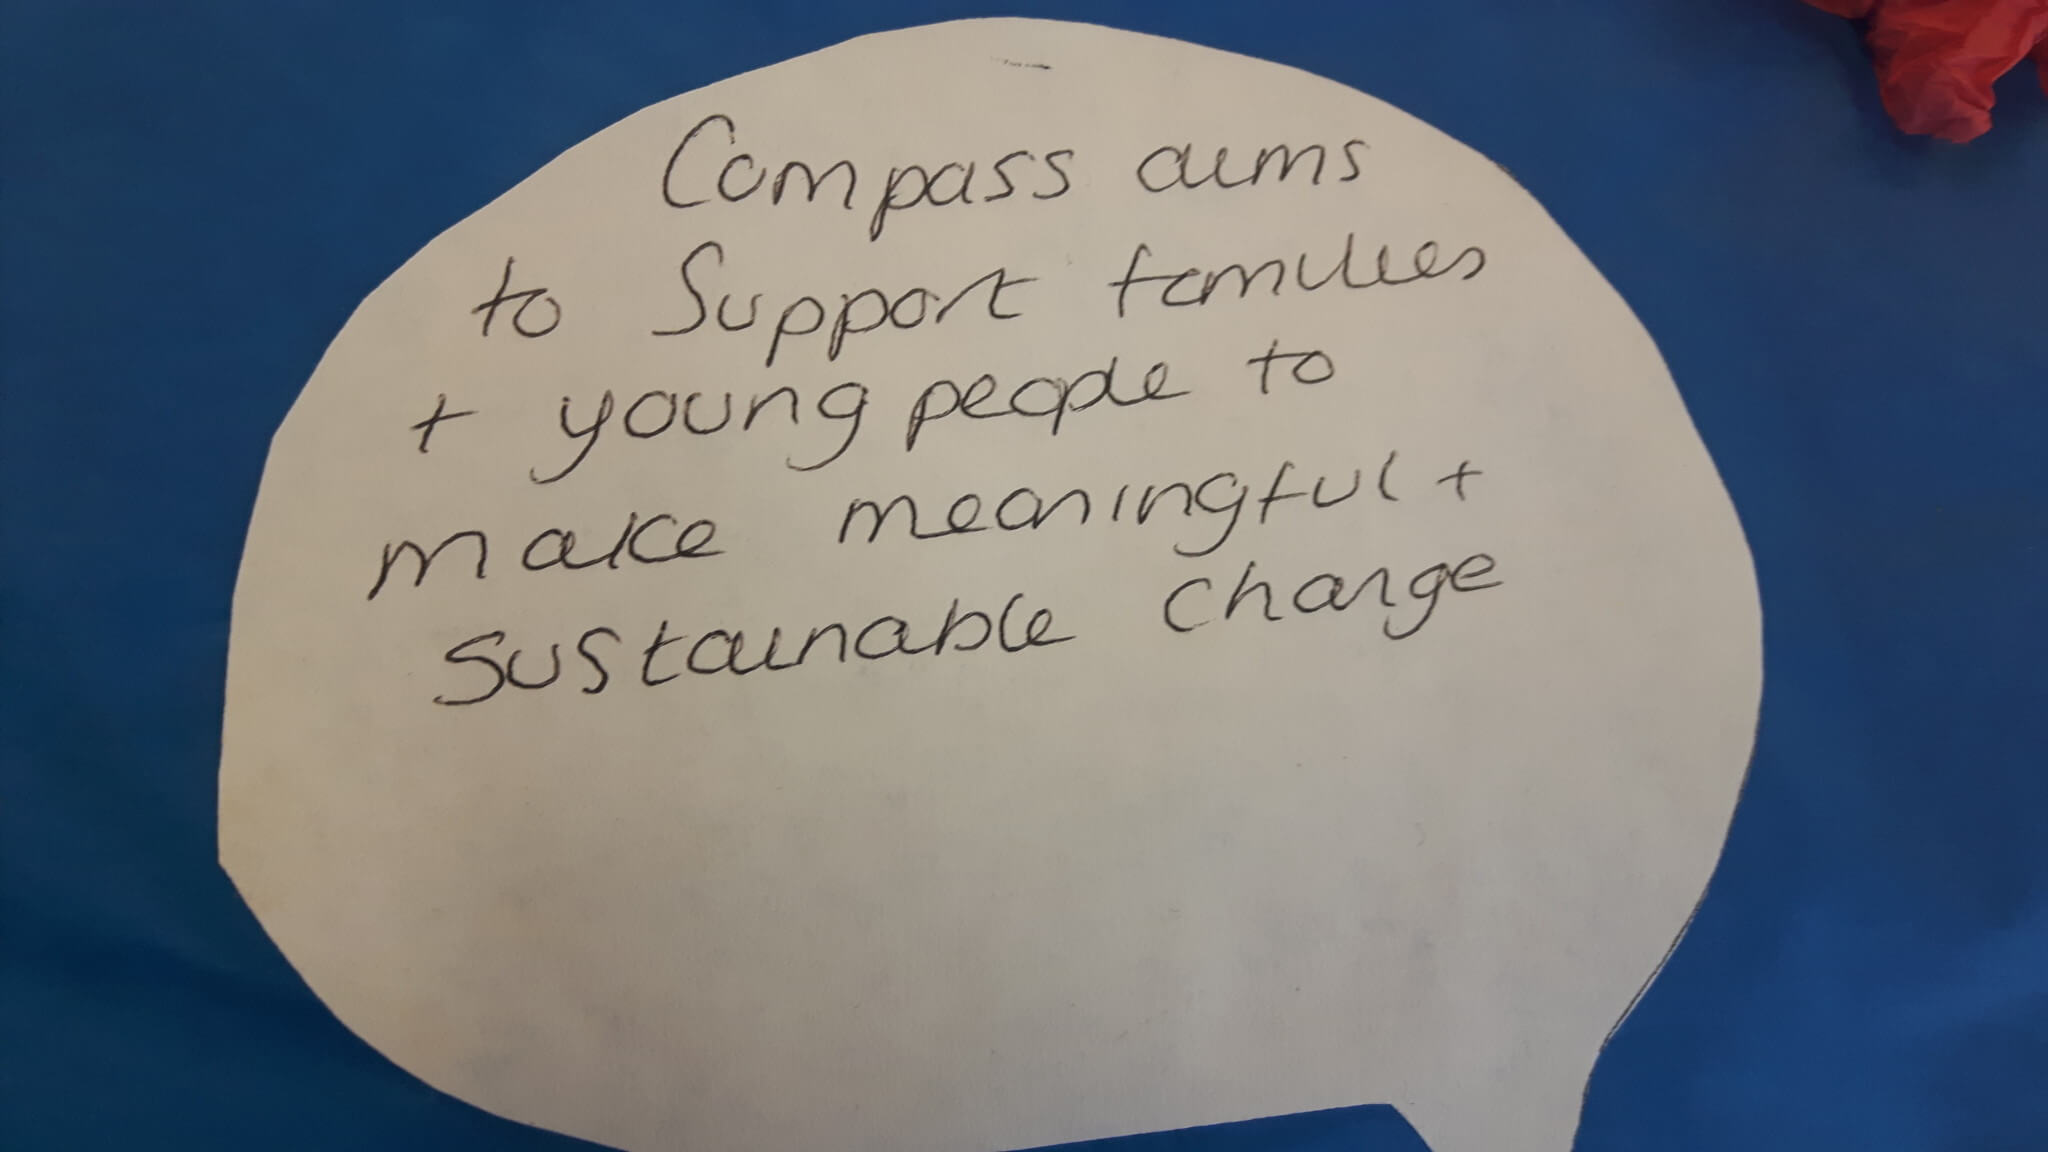 A quote about Compass supporting families to make meaningful and sustainable change